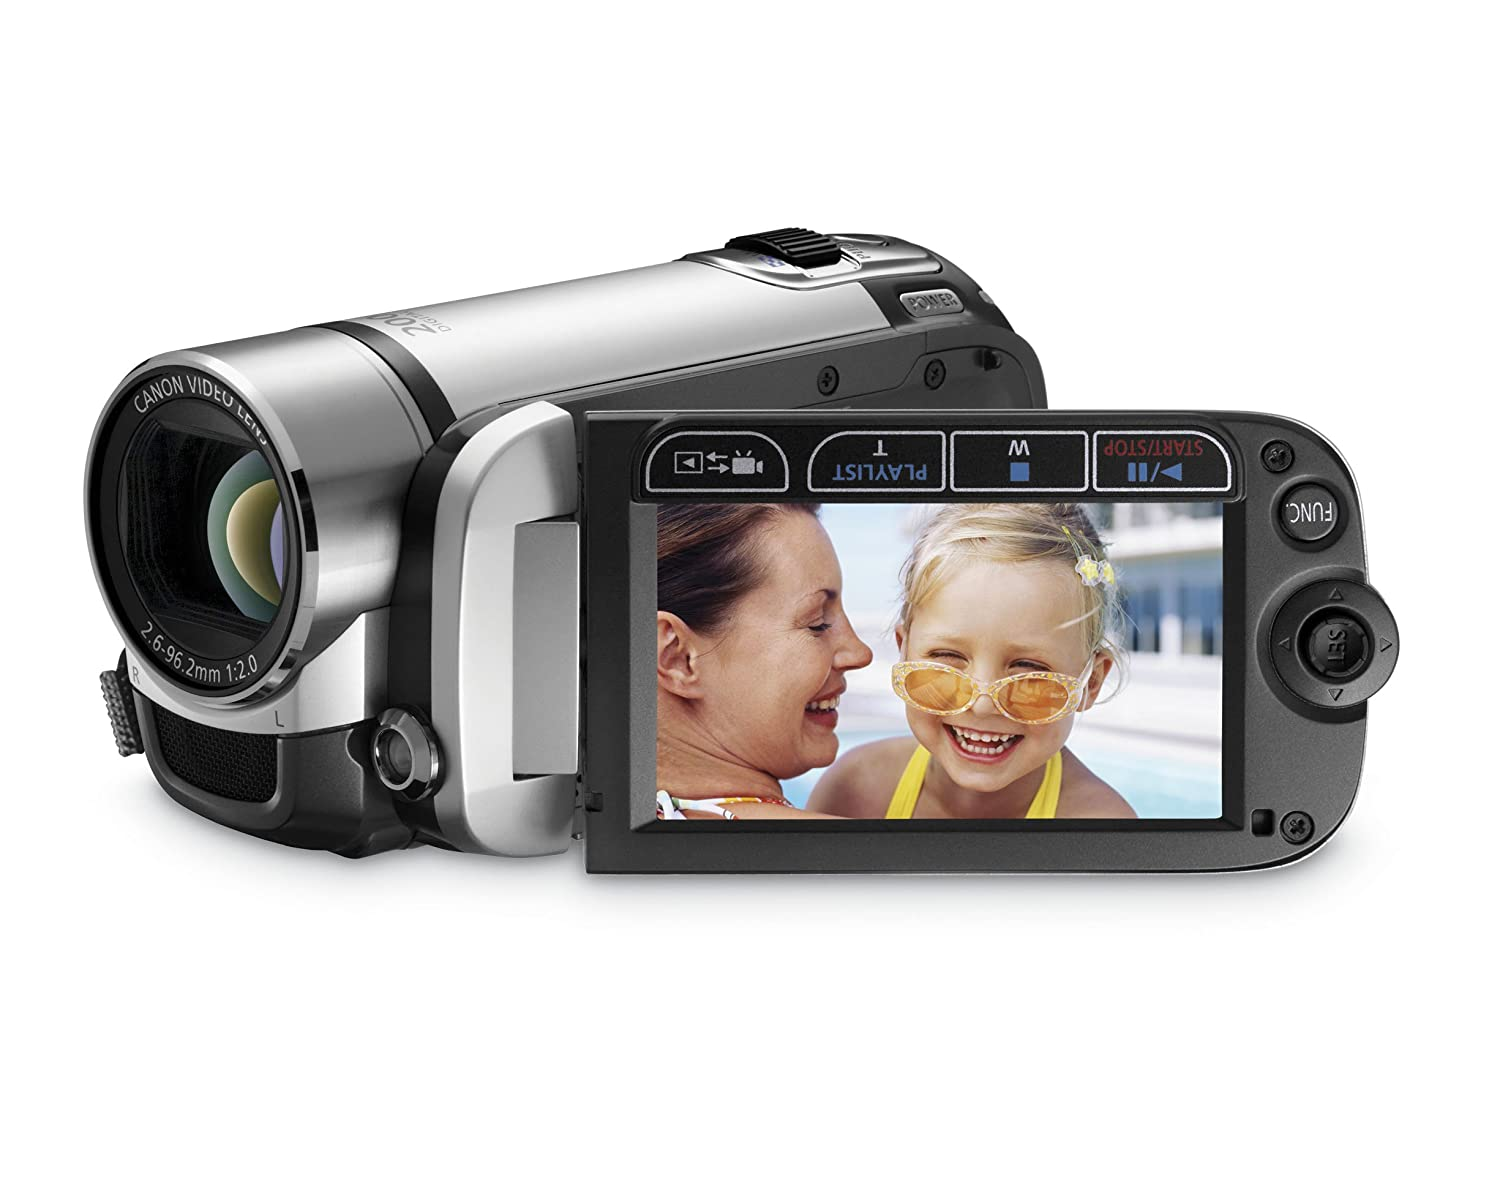 Amazon.com : Canon FS200 Flash Memory Camcorder w/41x Advanced Zoom (Misty  Silver) - 2009 MODEL (Discontinued by Manufacturer) : Used Camcorder Canon  ...